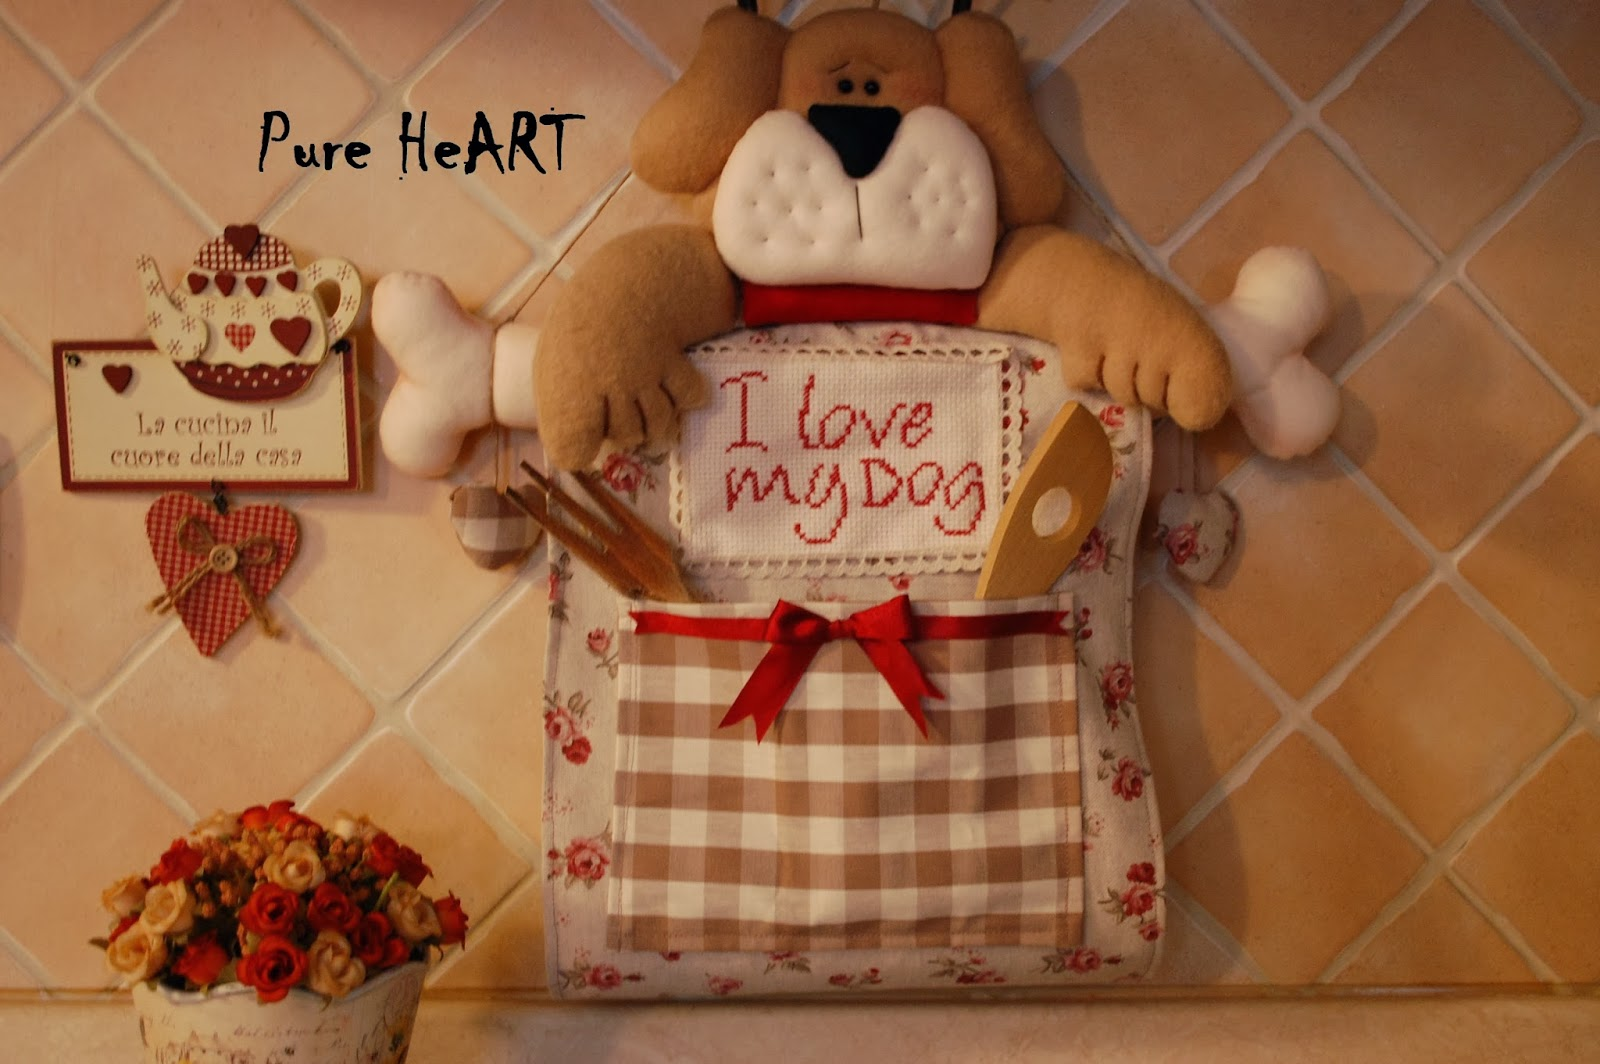 Cucito Country Cucina Pure Heart Di Francesca Pugliese We Love Country Kitchens